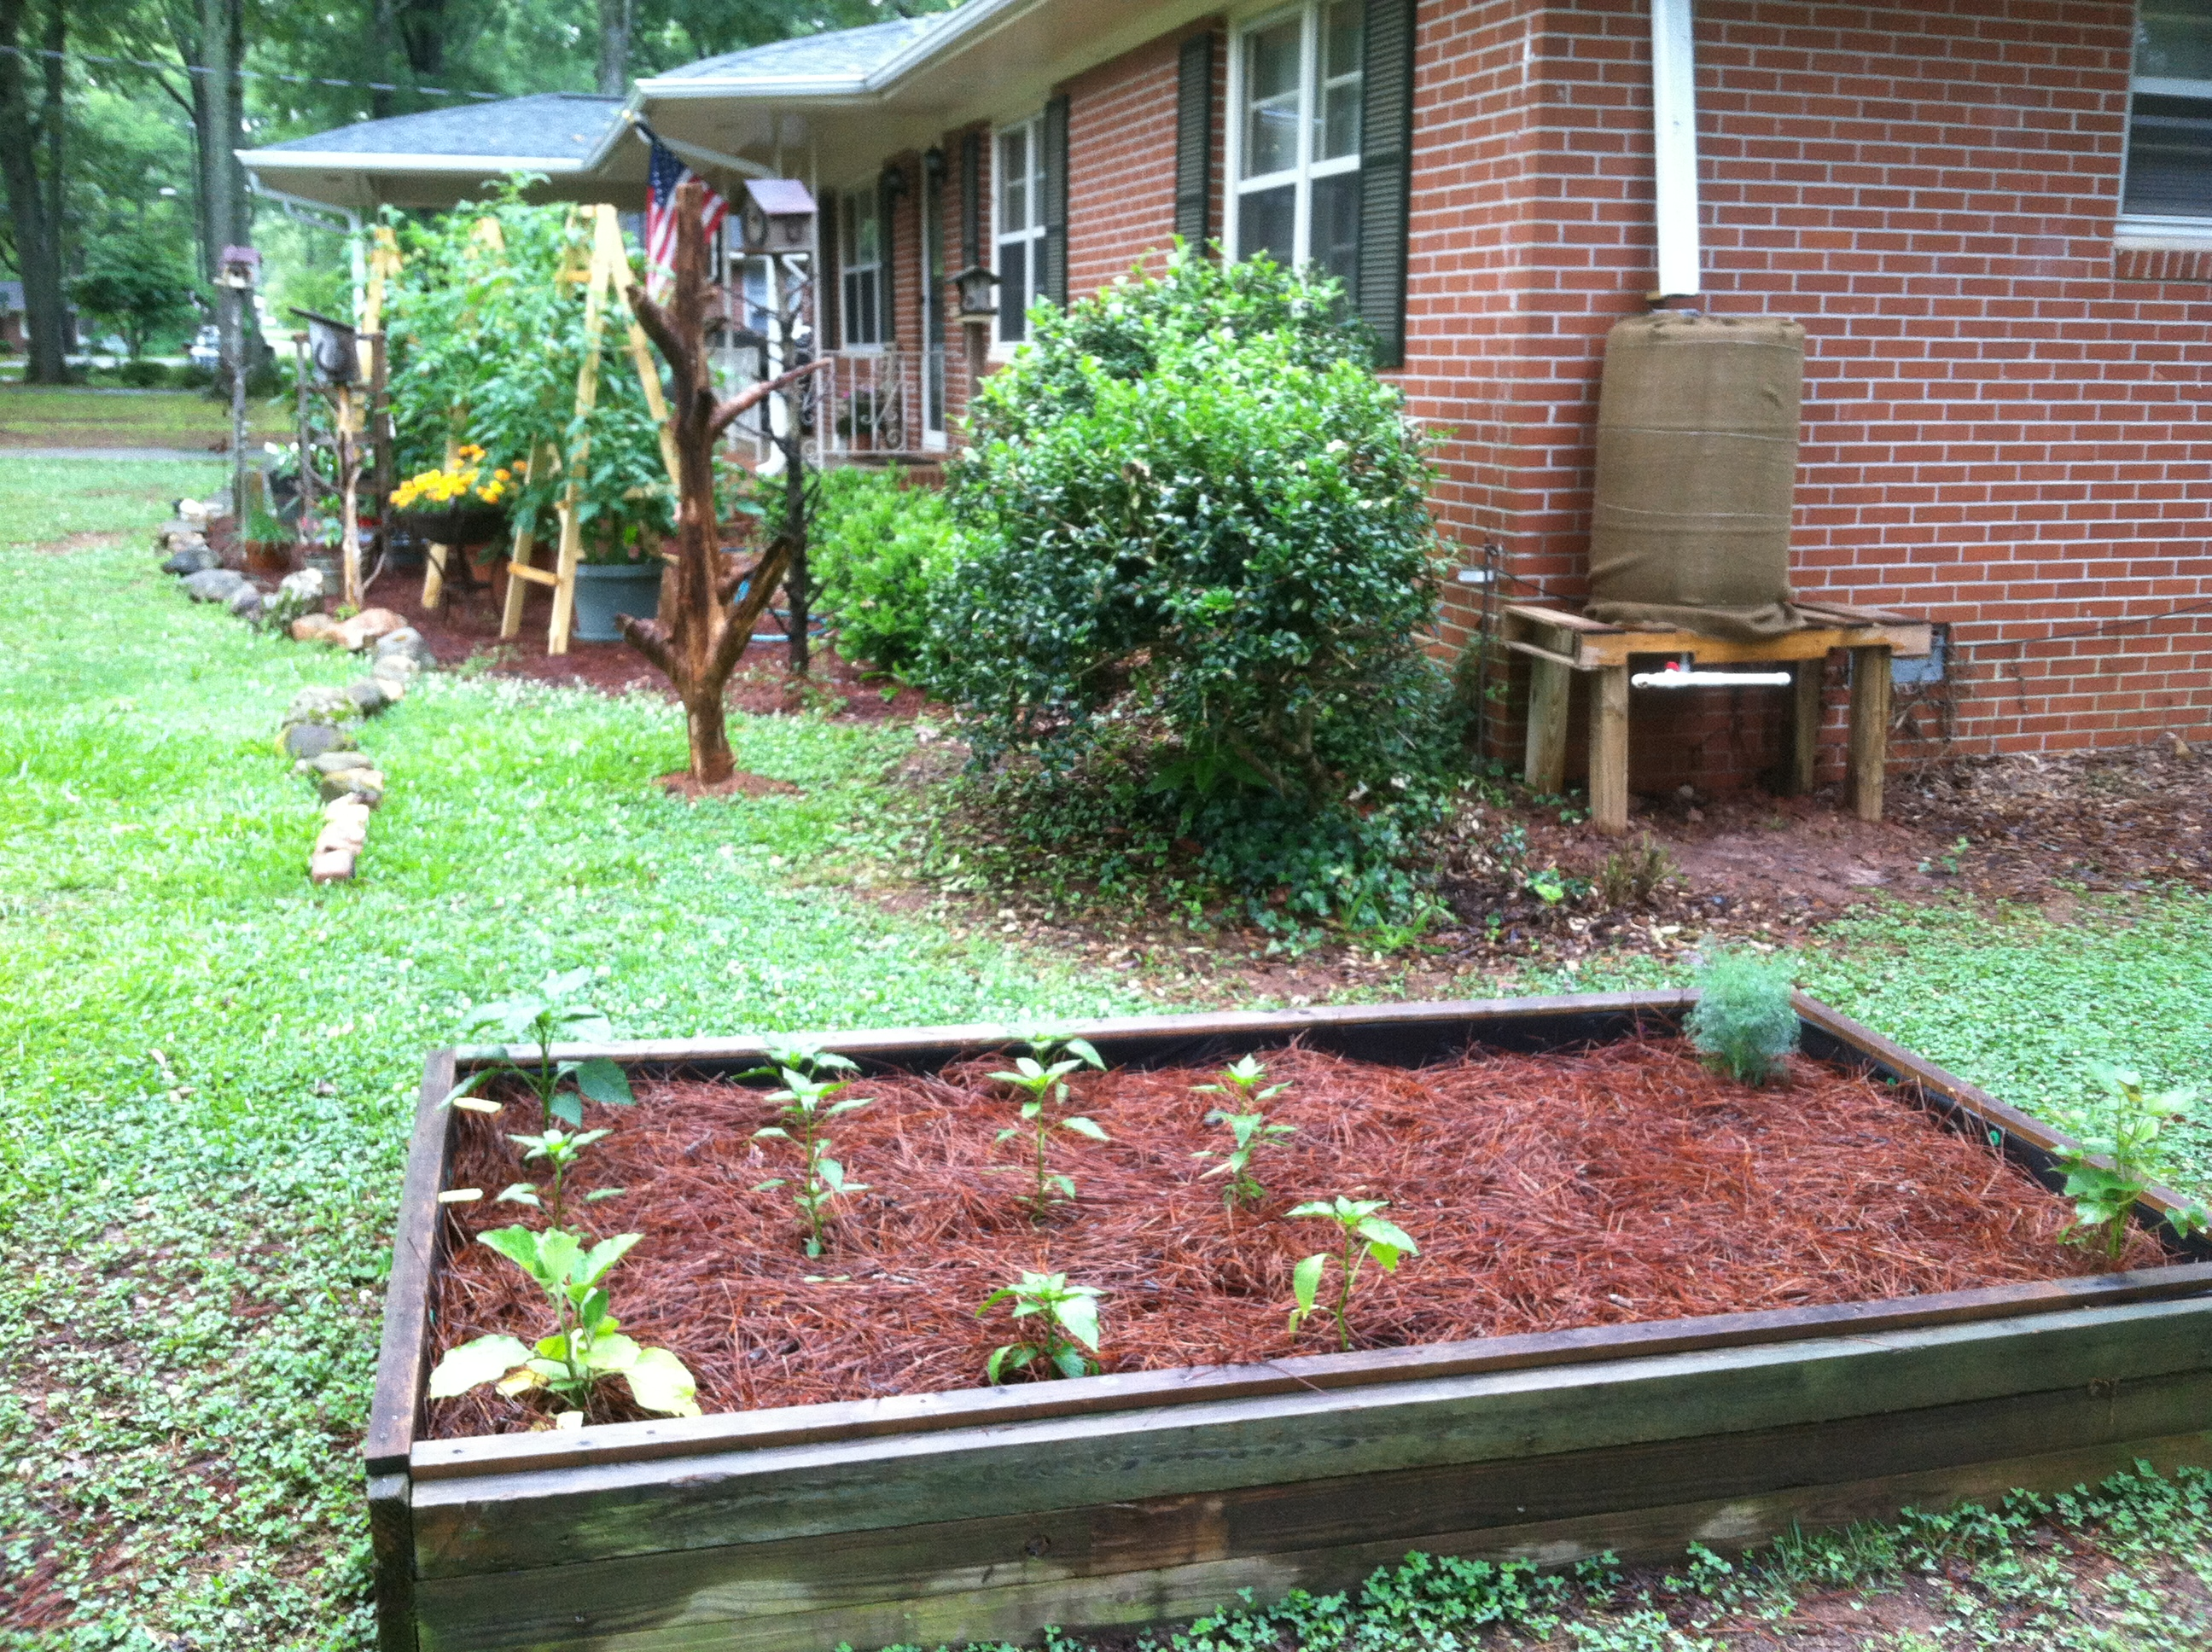 raised bed grassed area plants this aged house